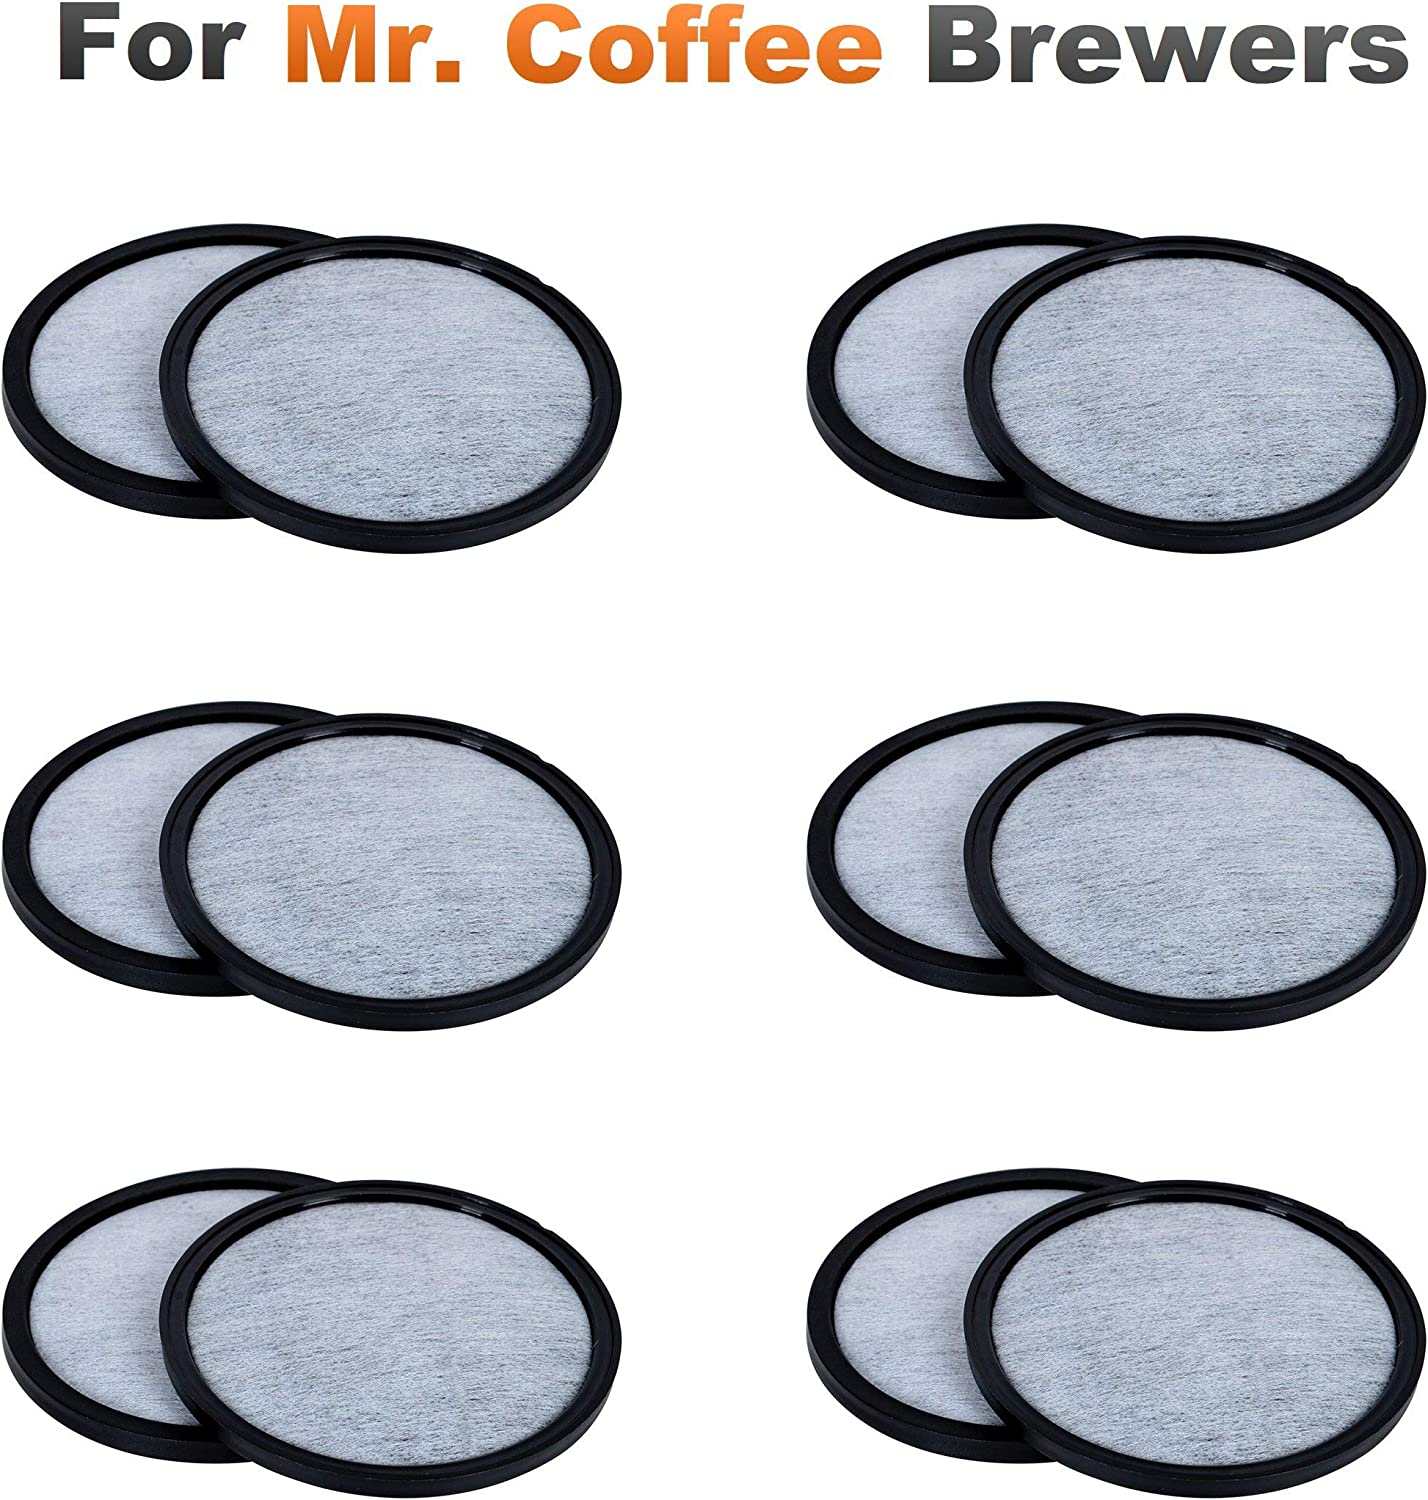 K&J 12-Pack of Compatible Mr. Coffee Water Filter Discs - Universal Fit - Replacement Charcoal Water Filter Discs for Mr Coffee Coffee Brewers - Better Than OEM!: Kitchen & Dining